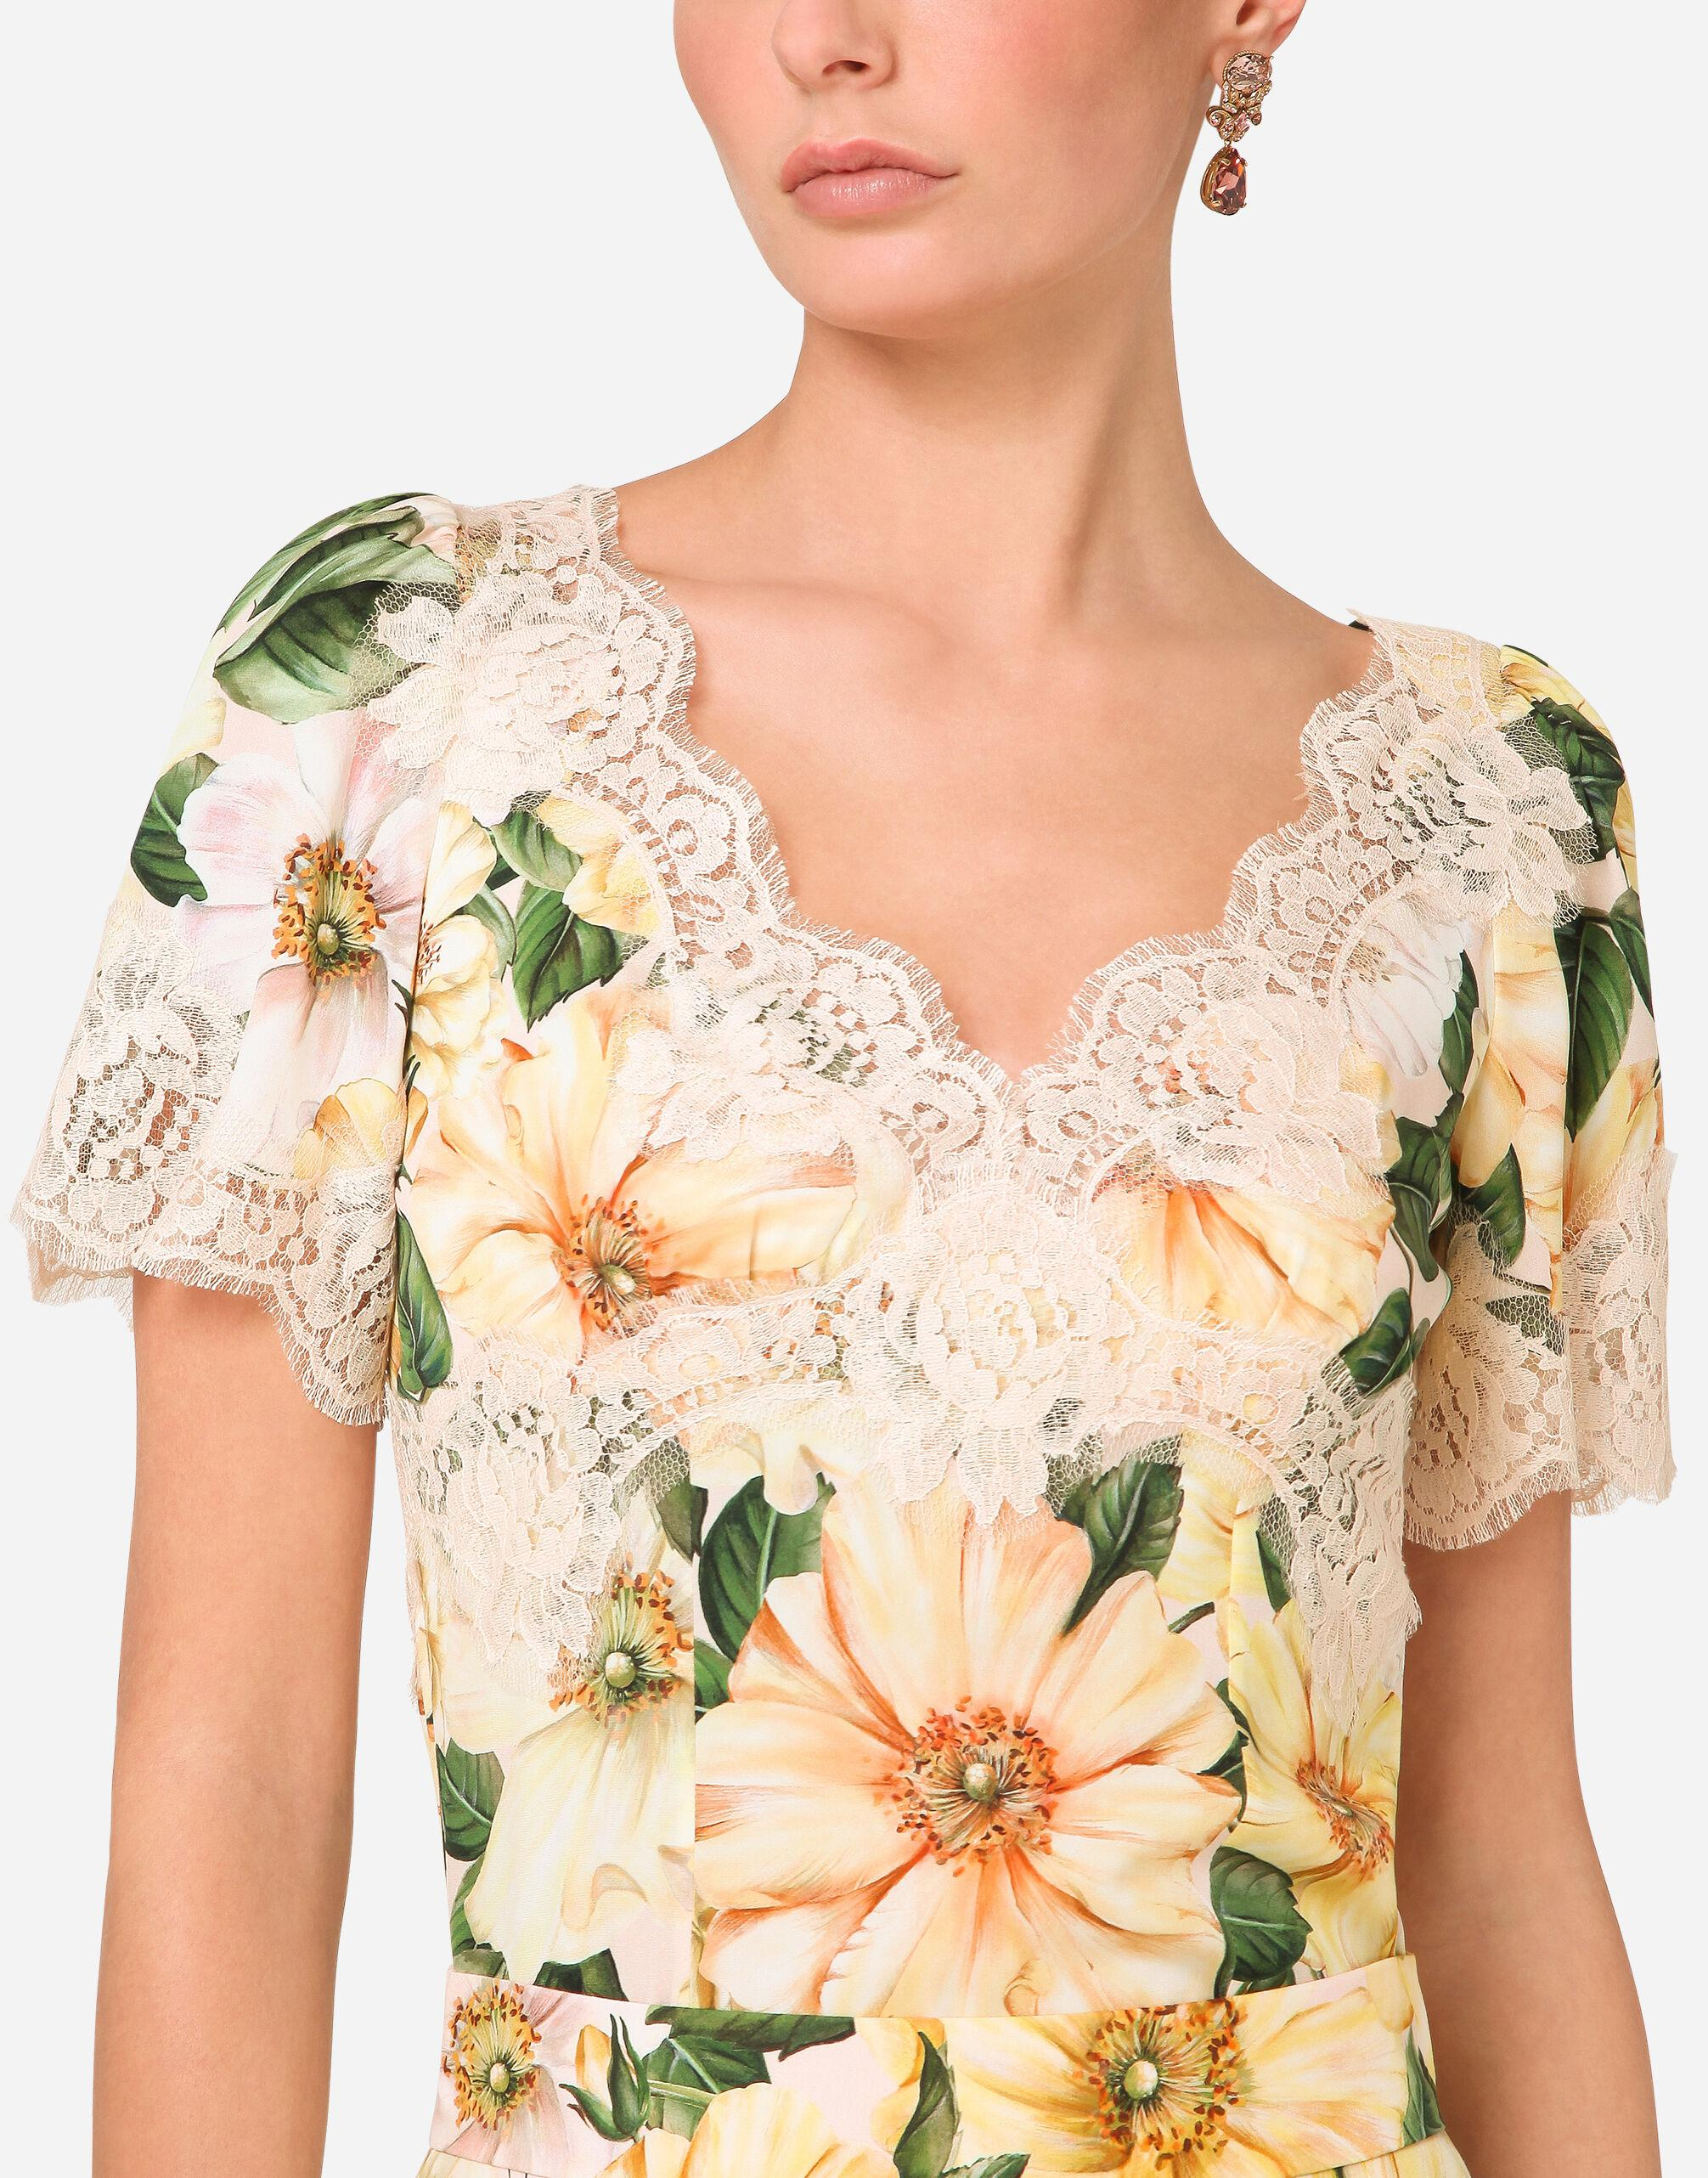 Camellia-print charmeuse top with lace details 4